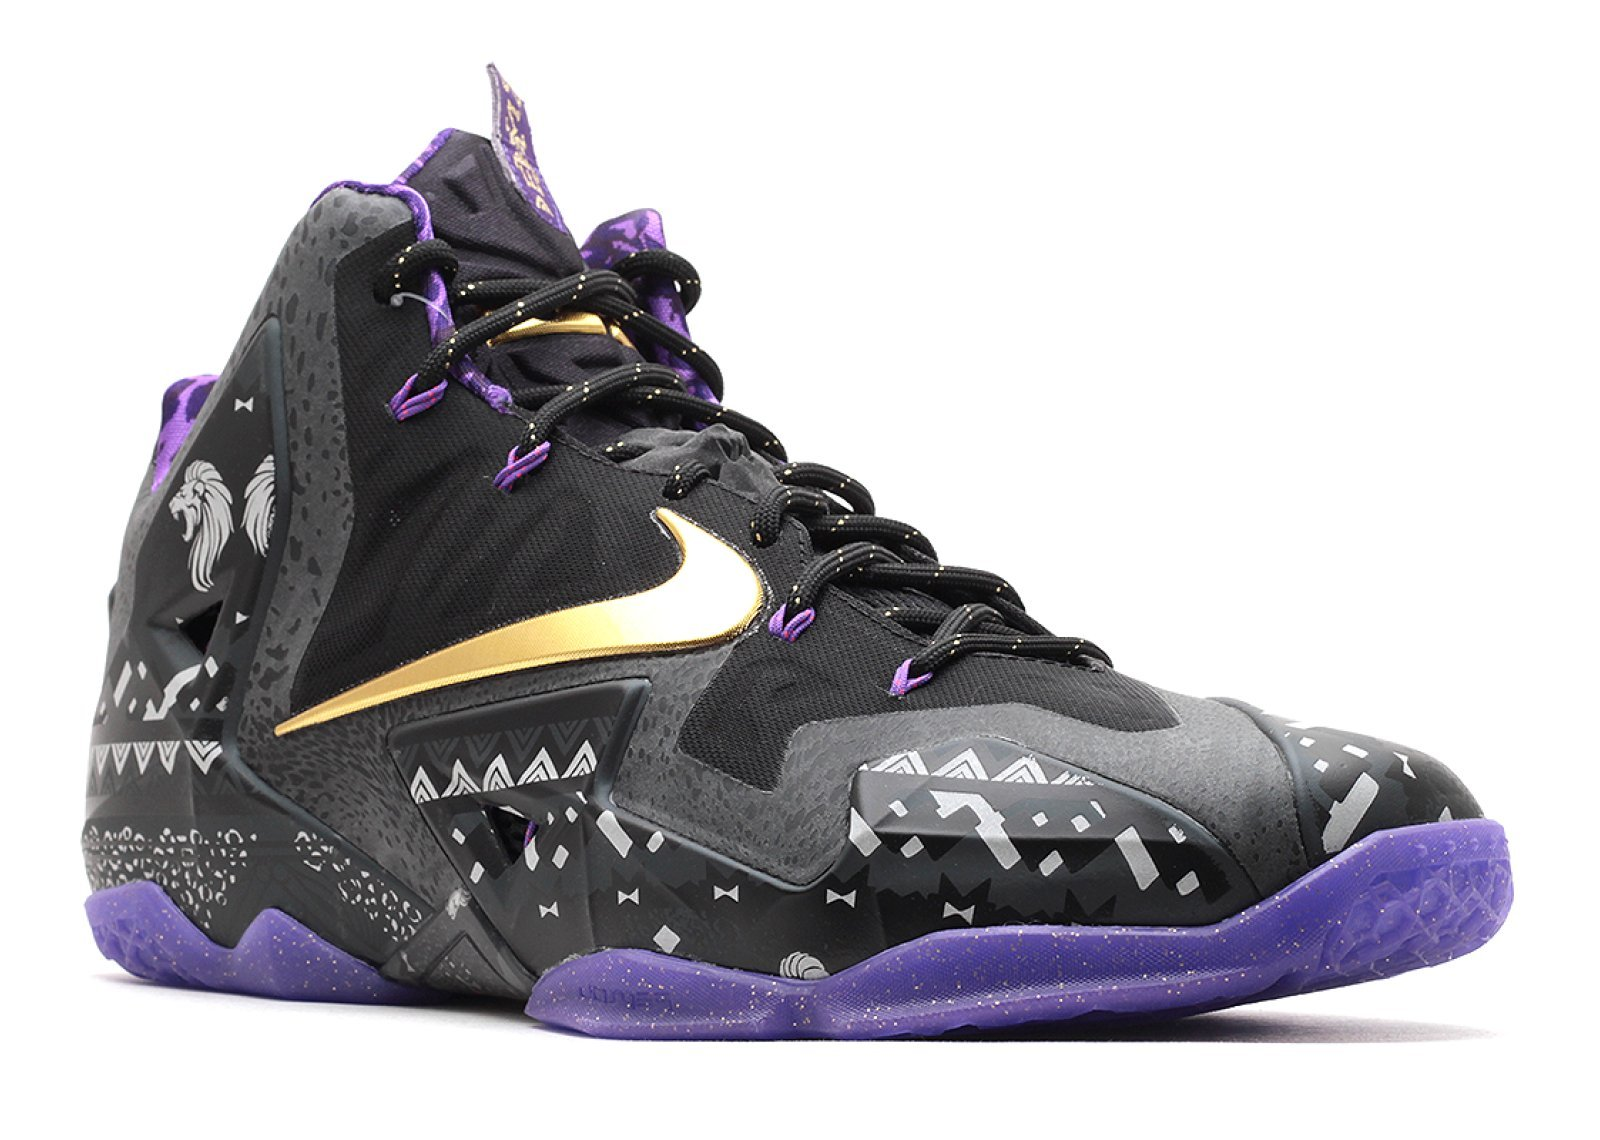 8f2e89f031d412 NIKE LEBRON XI - BHM LEBRON 11 BASKETBALL SHOES - BLACK HISTORY MONTH  LIMITED!